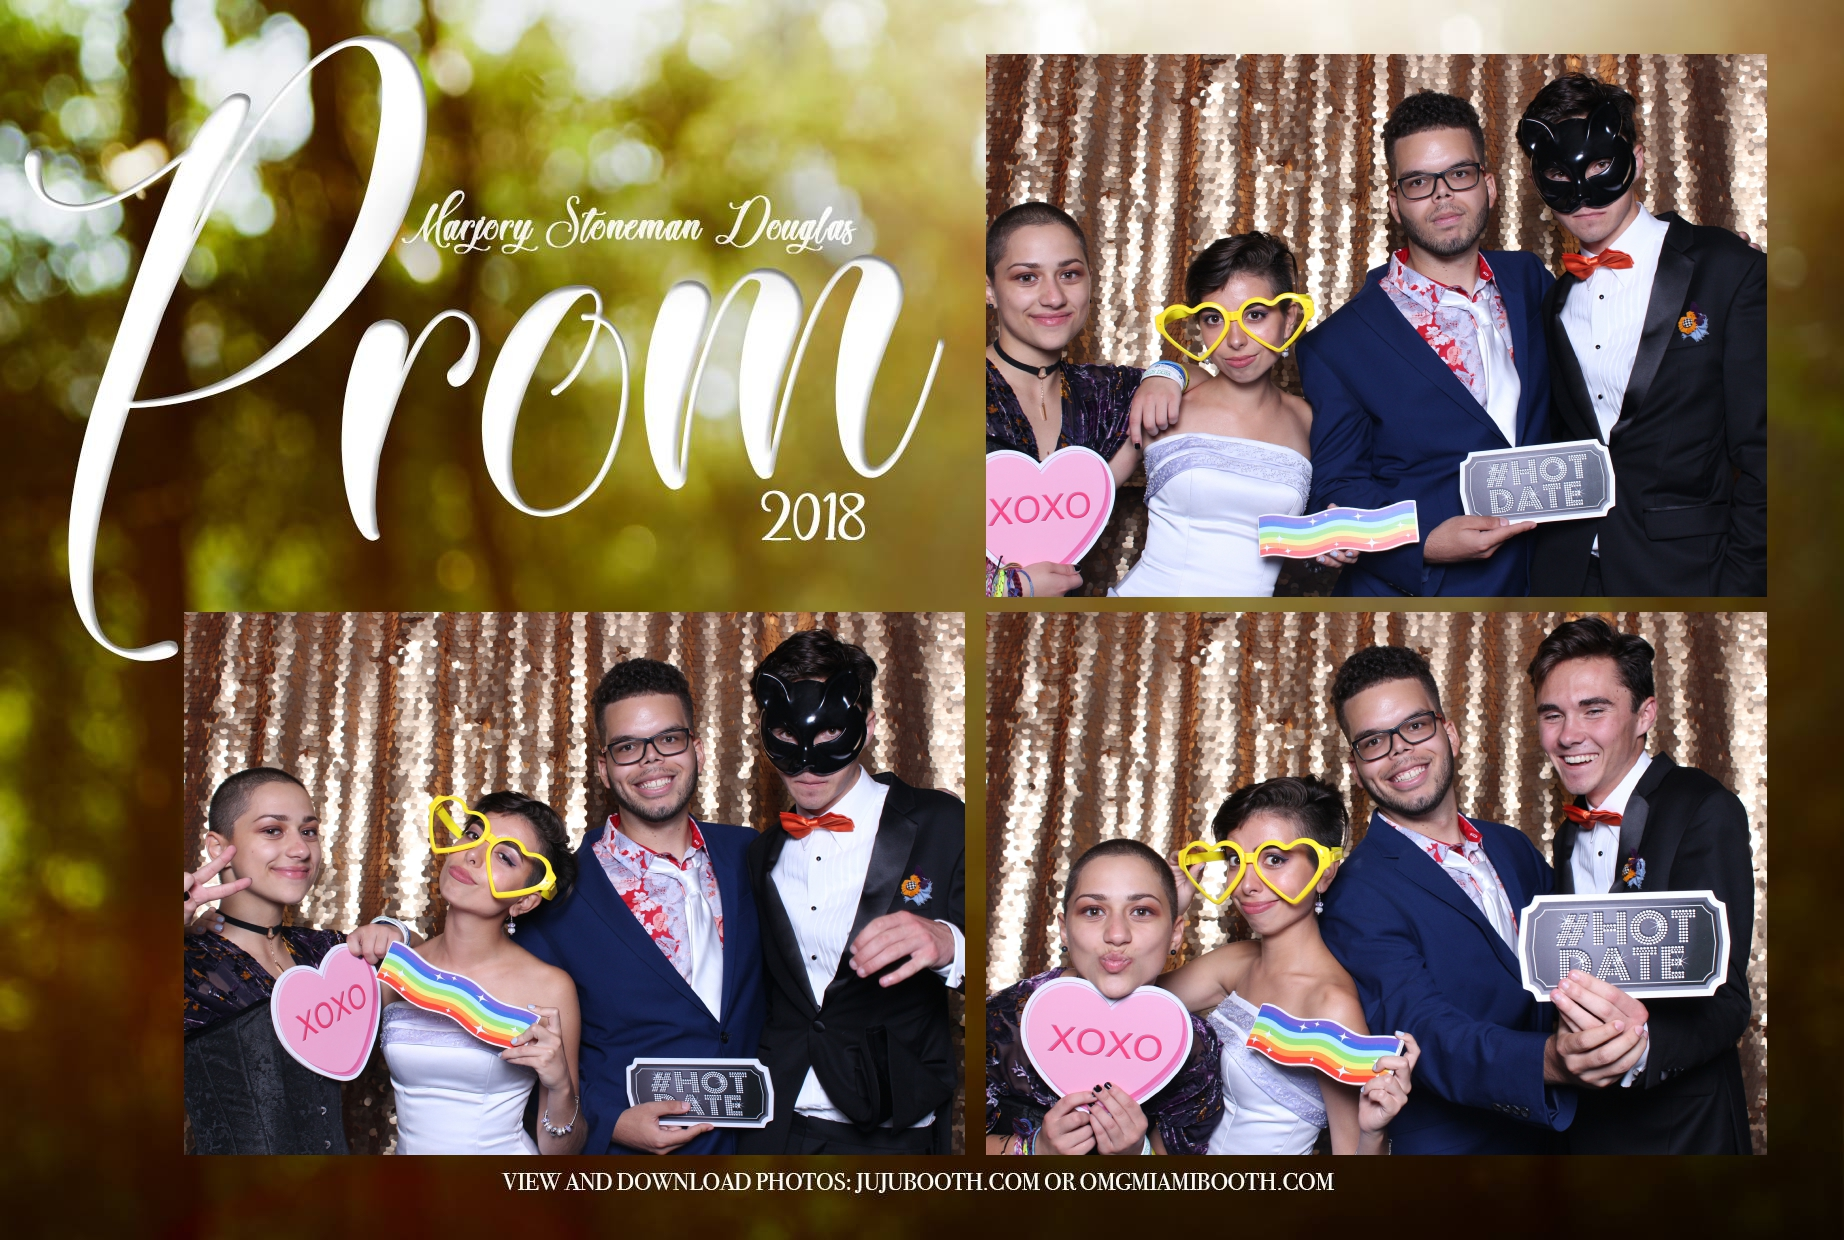 Stoneman Douglas Prom photo booth